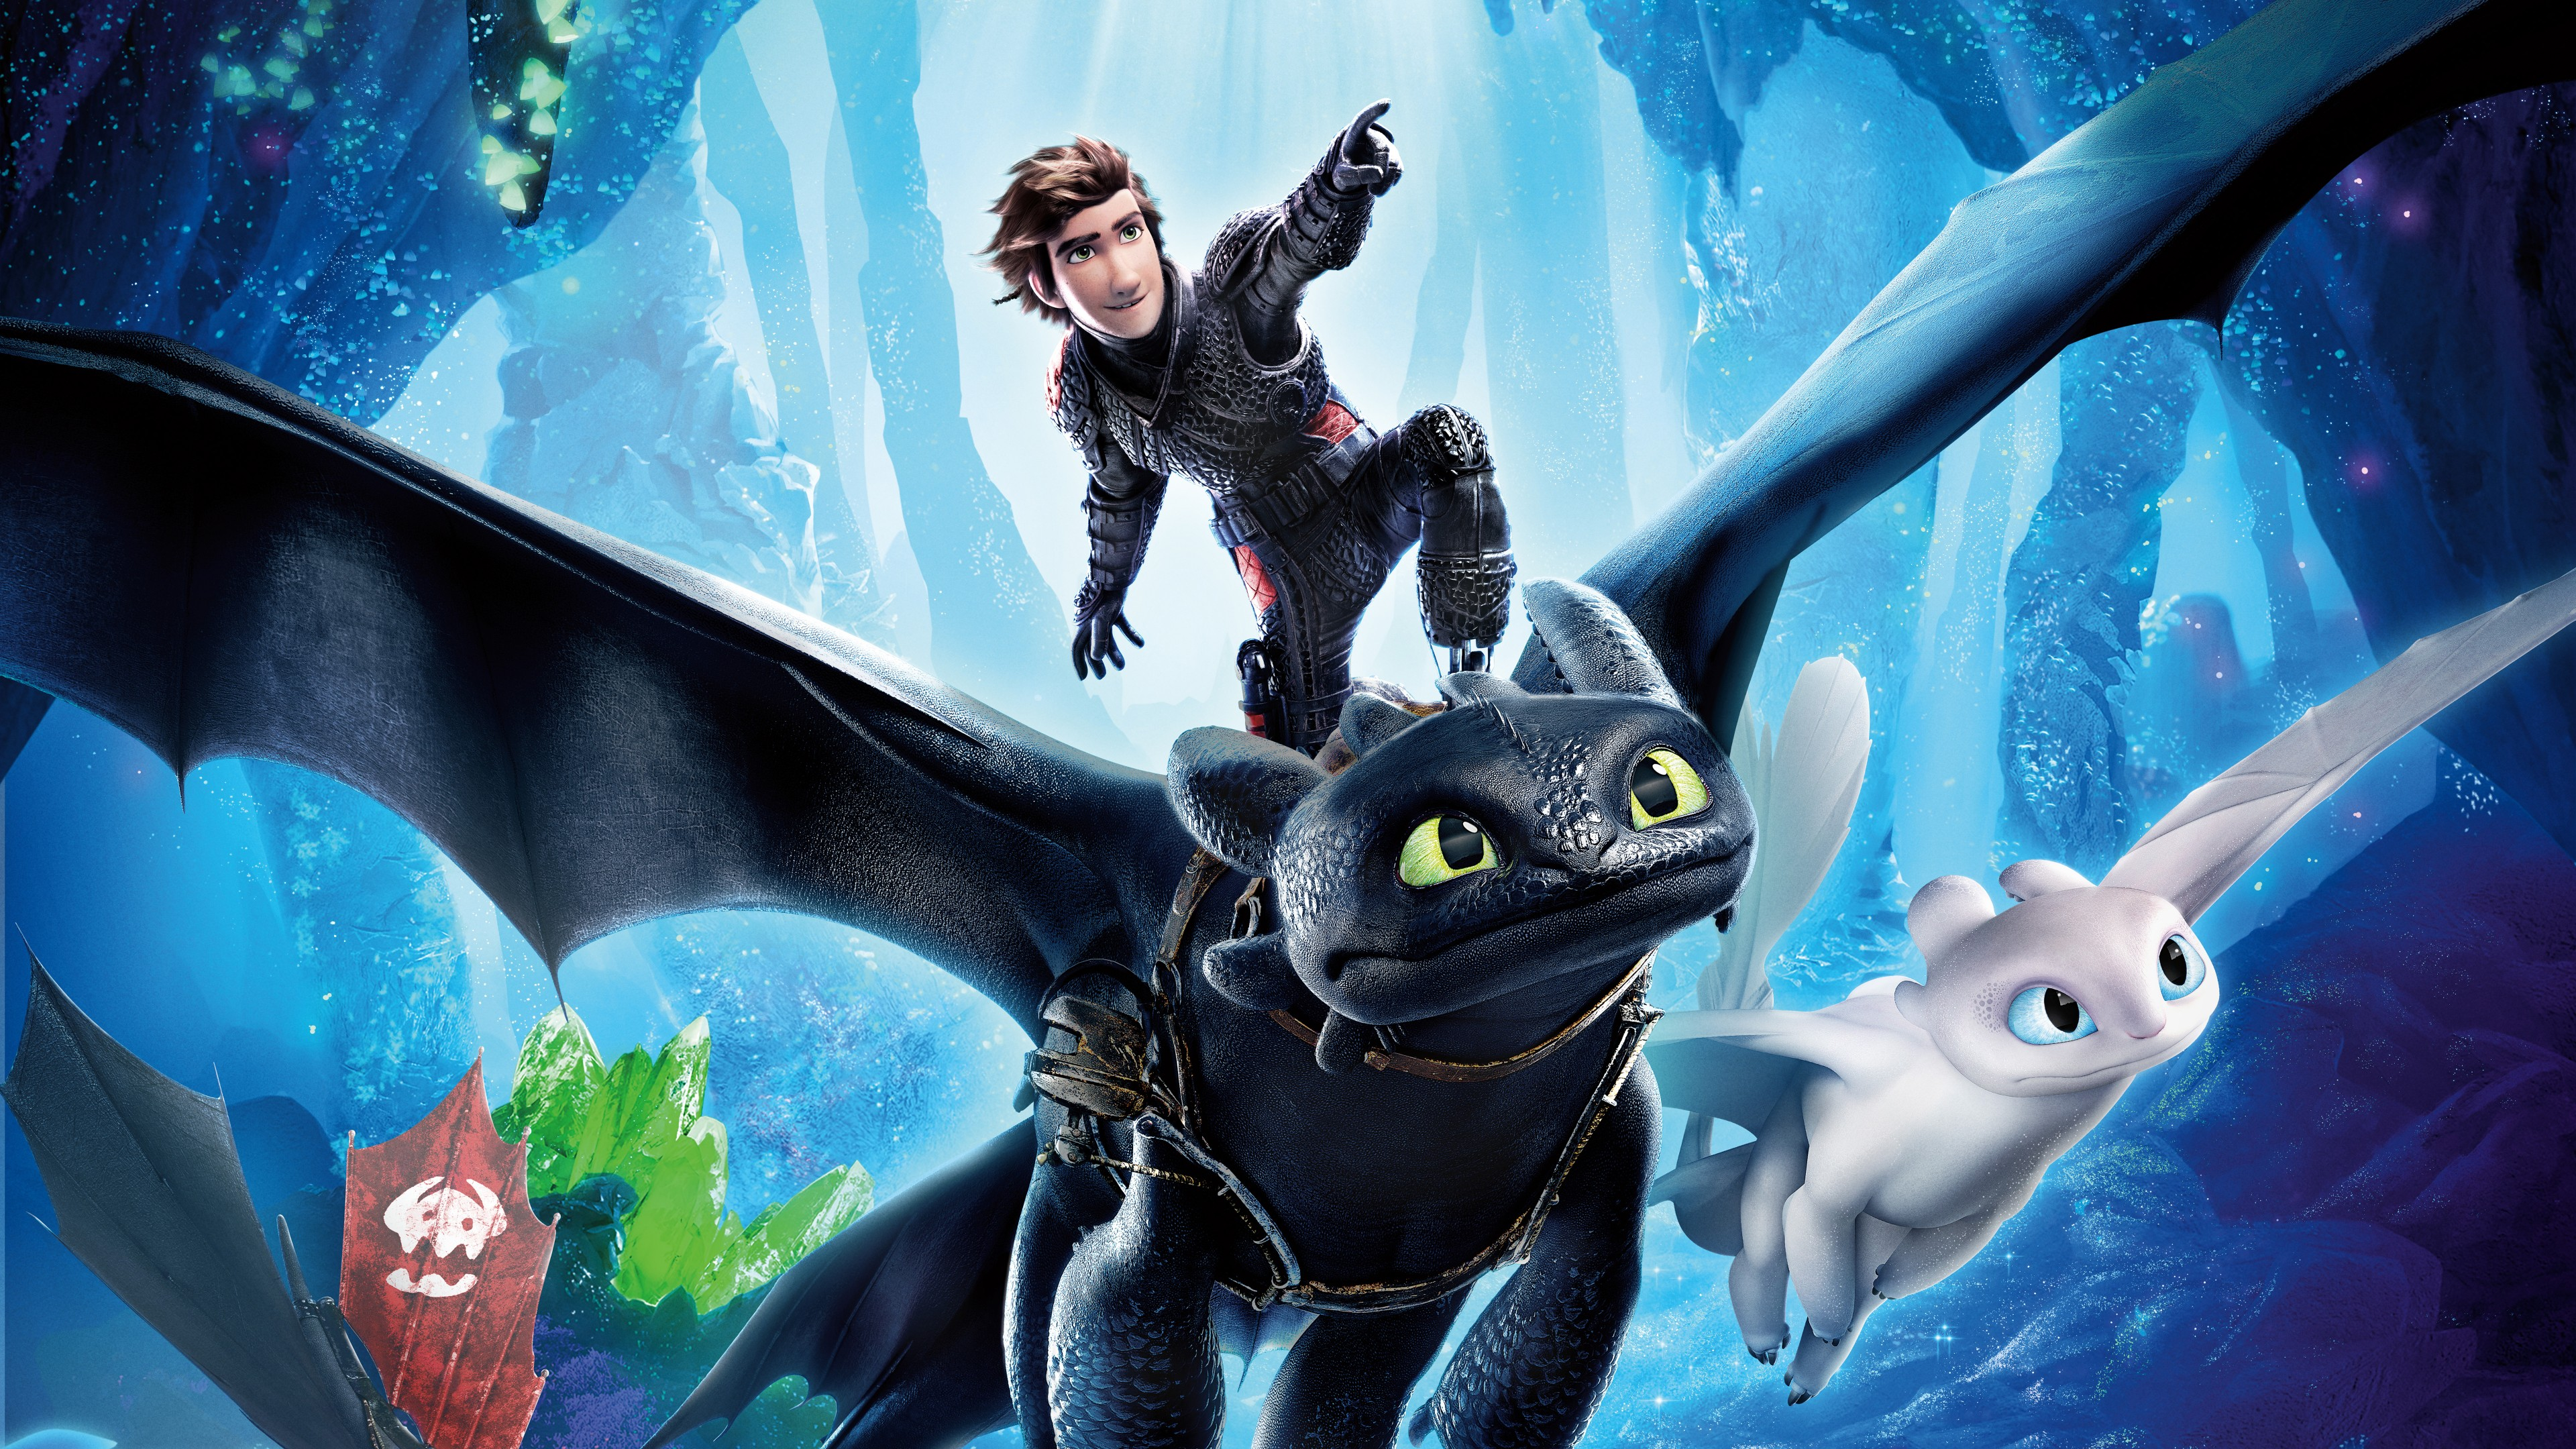 How To Train Your Dragon 3 The Hidden World 4K wallpaper